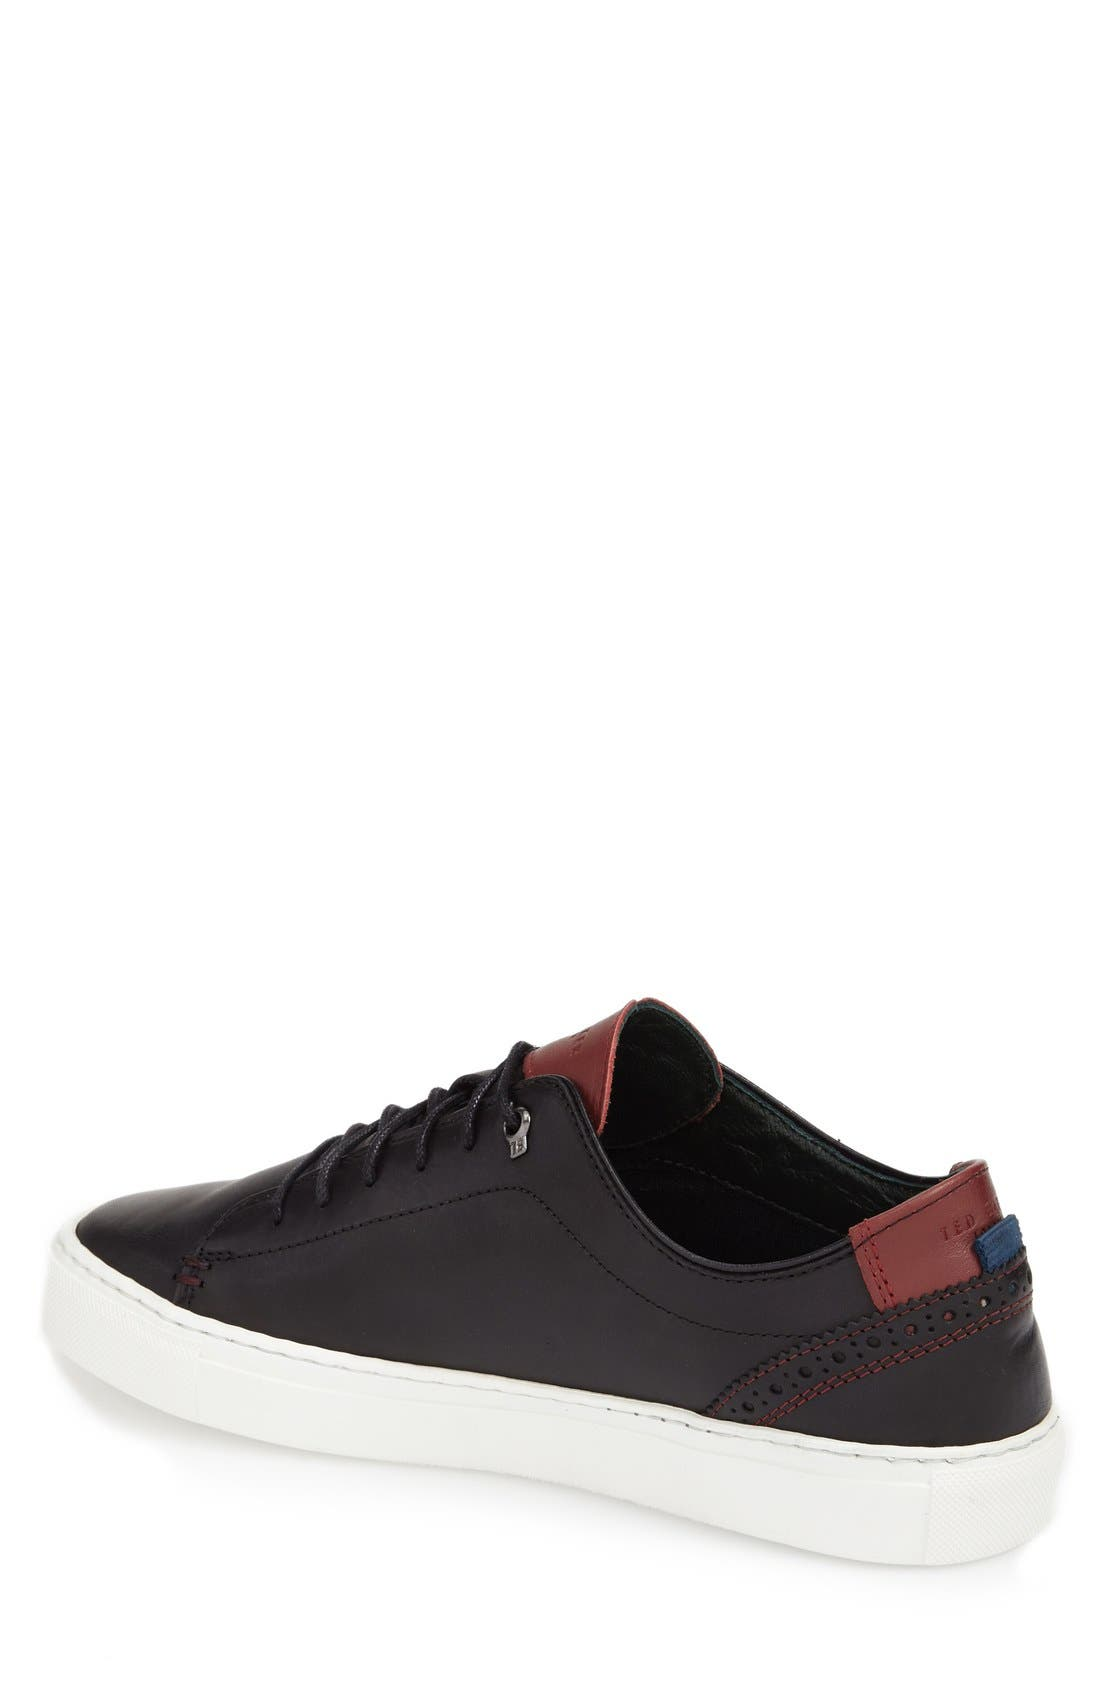 TED BAKER LONDON, 'Kiing Classic' Sneaker, Alternate thumbnail 5, color, 001